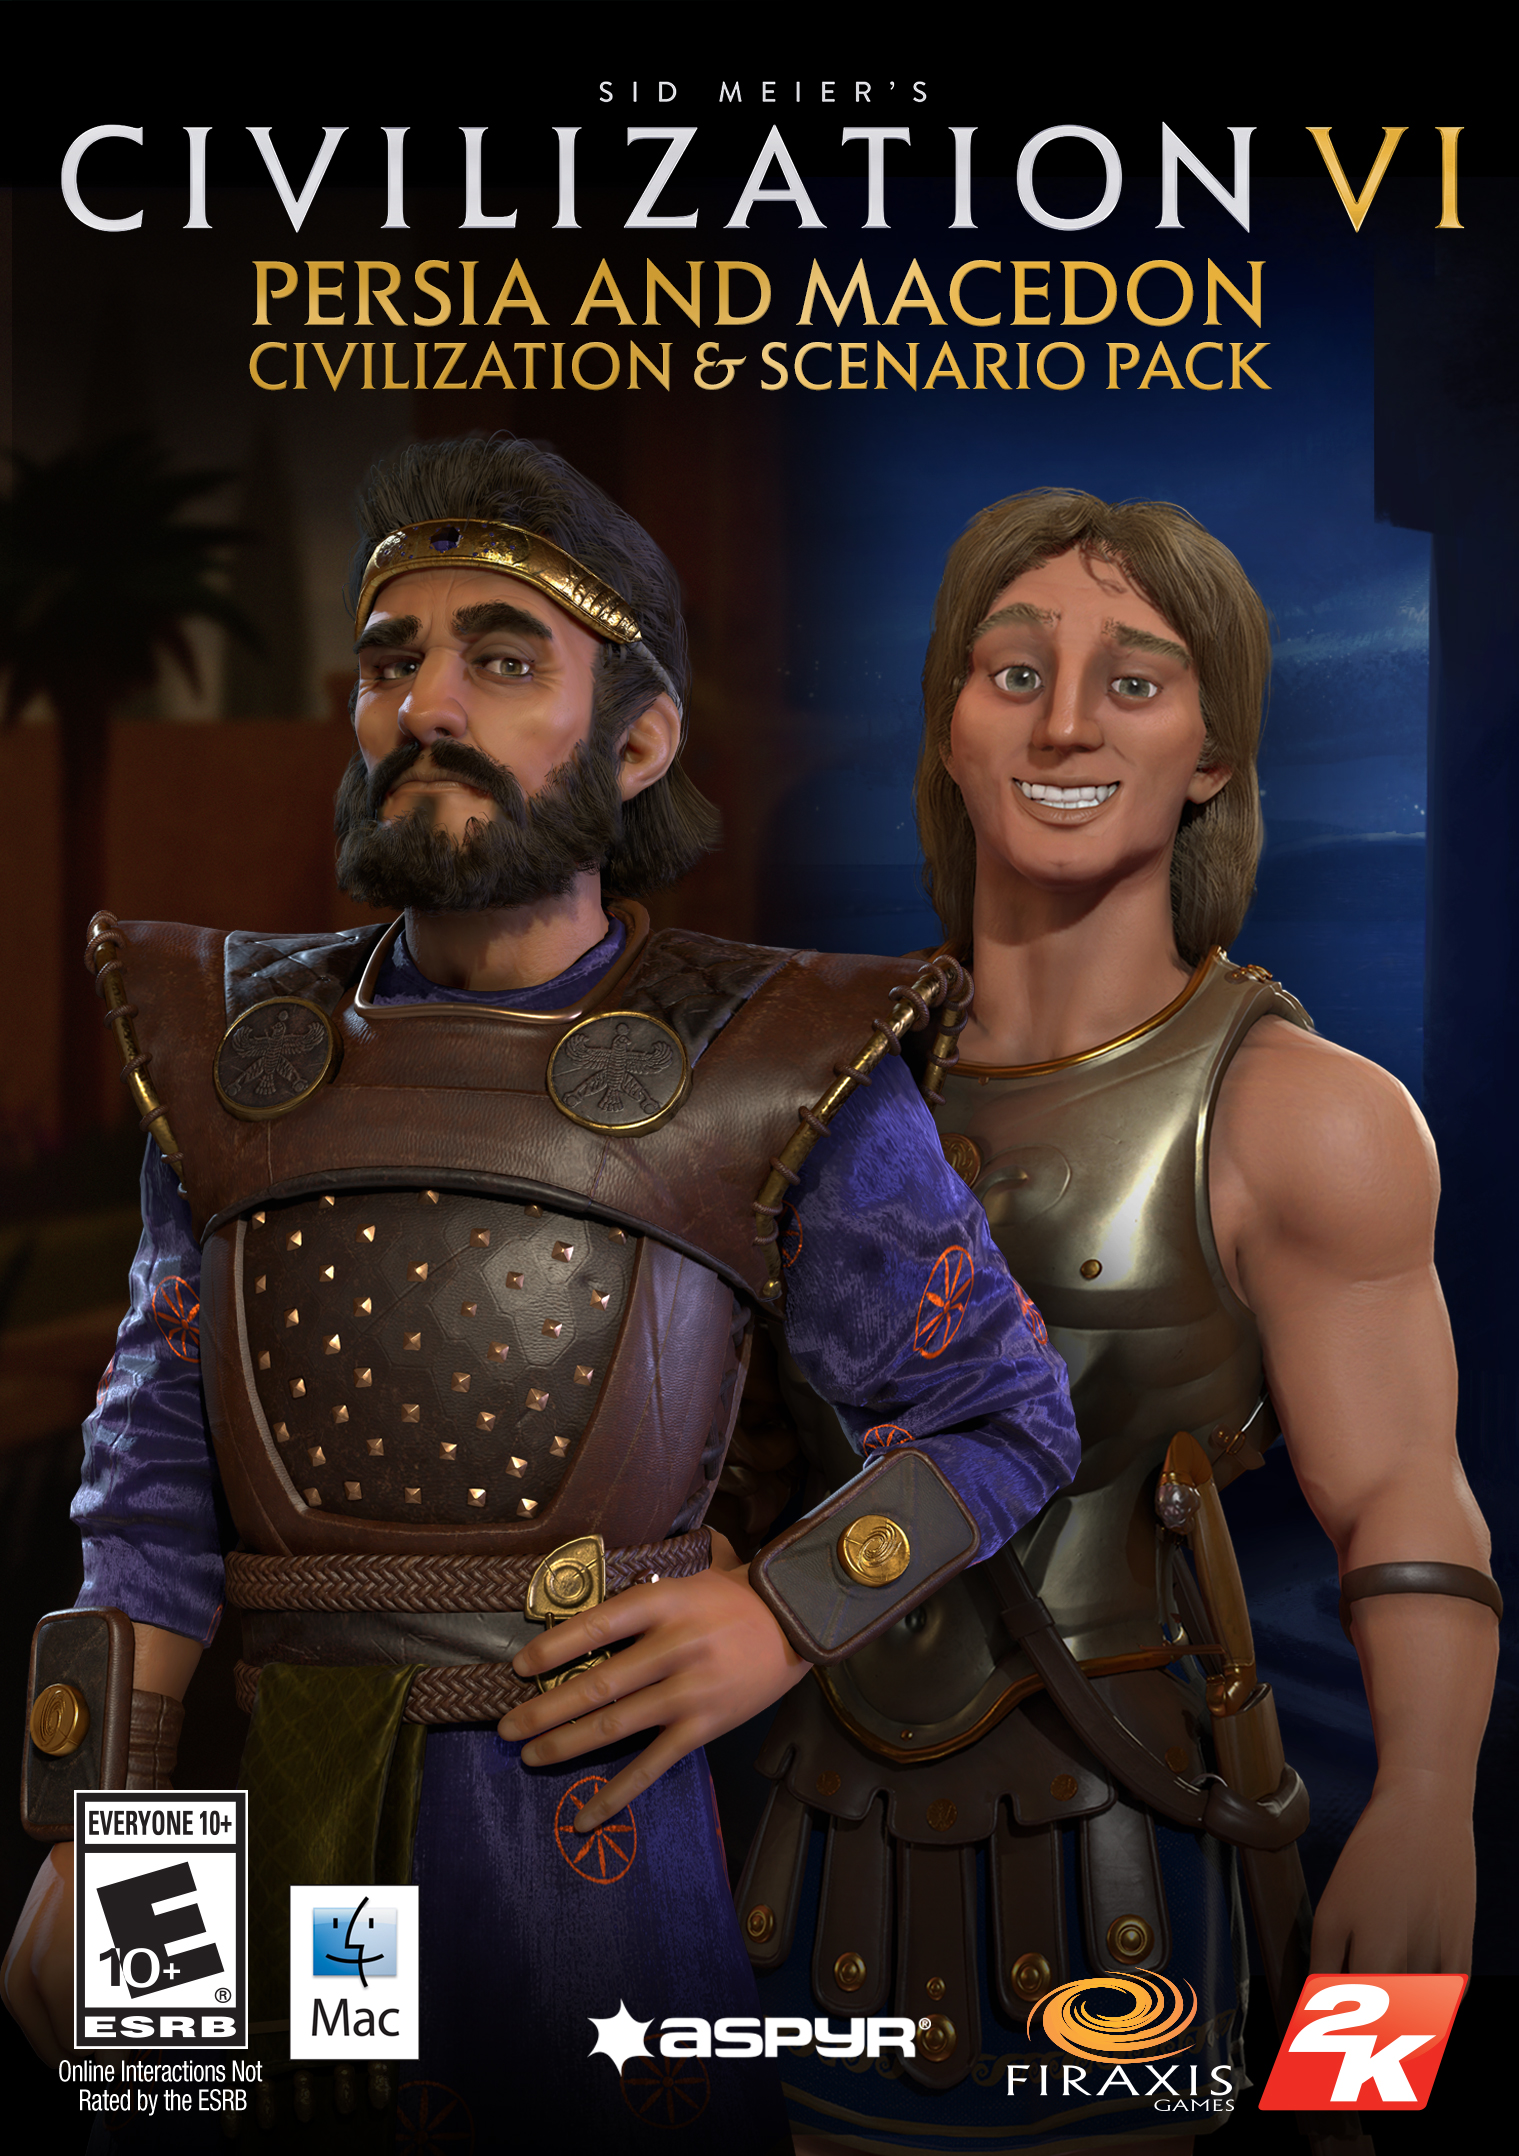 Sid Meier?s Civilization VI - Persia and Macedon Civilization & Scenario Pack  (Mac) [Online Game Code]